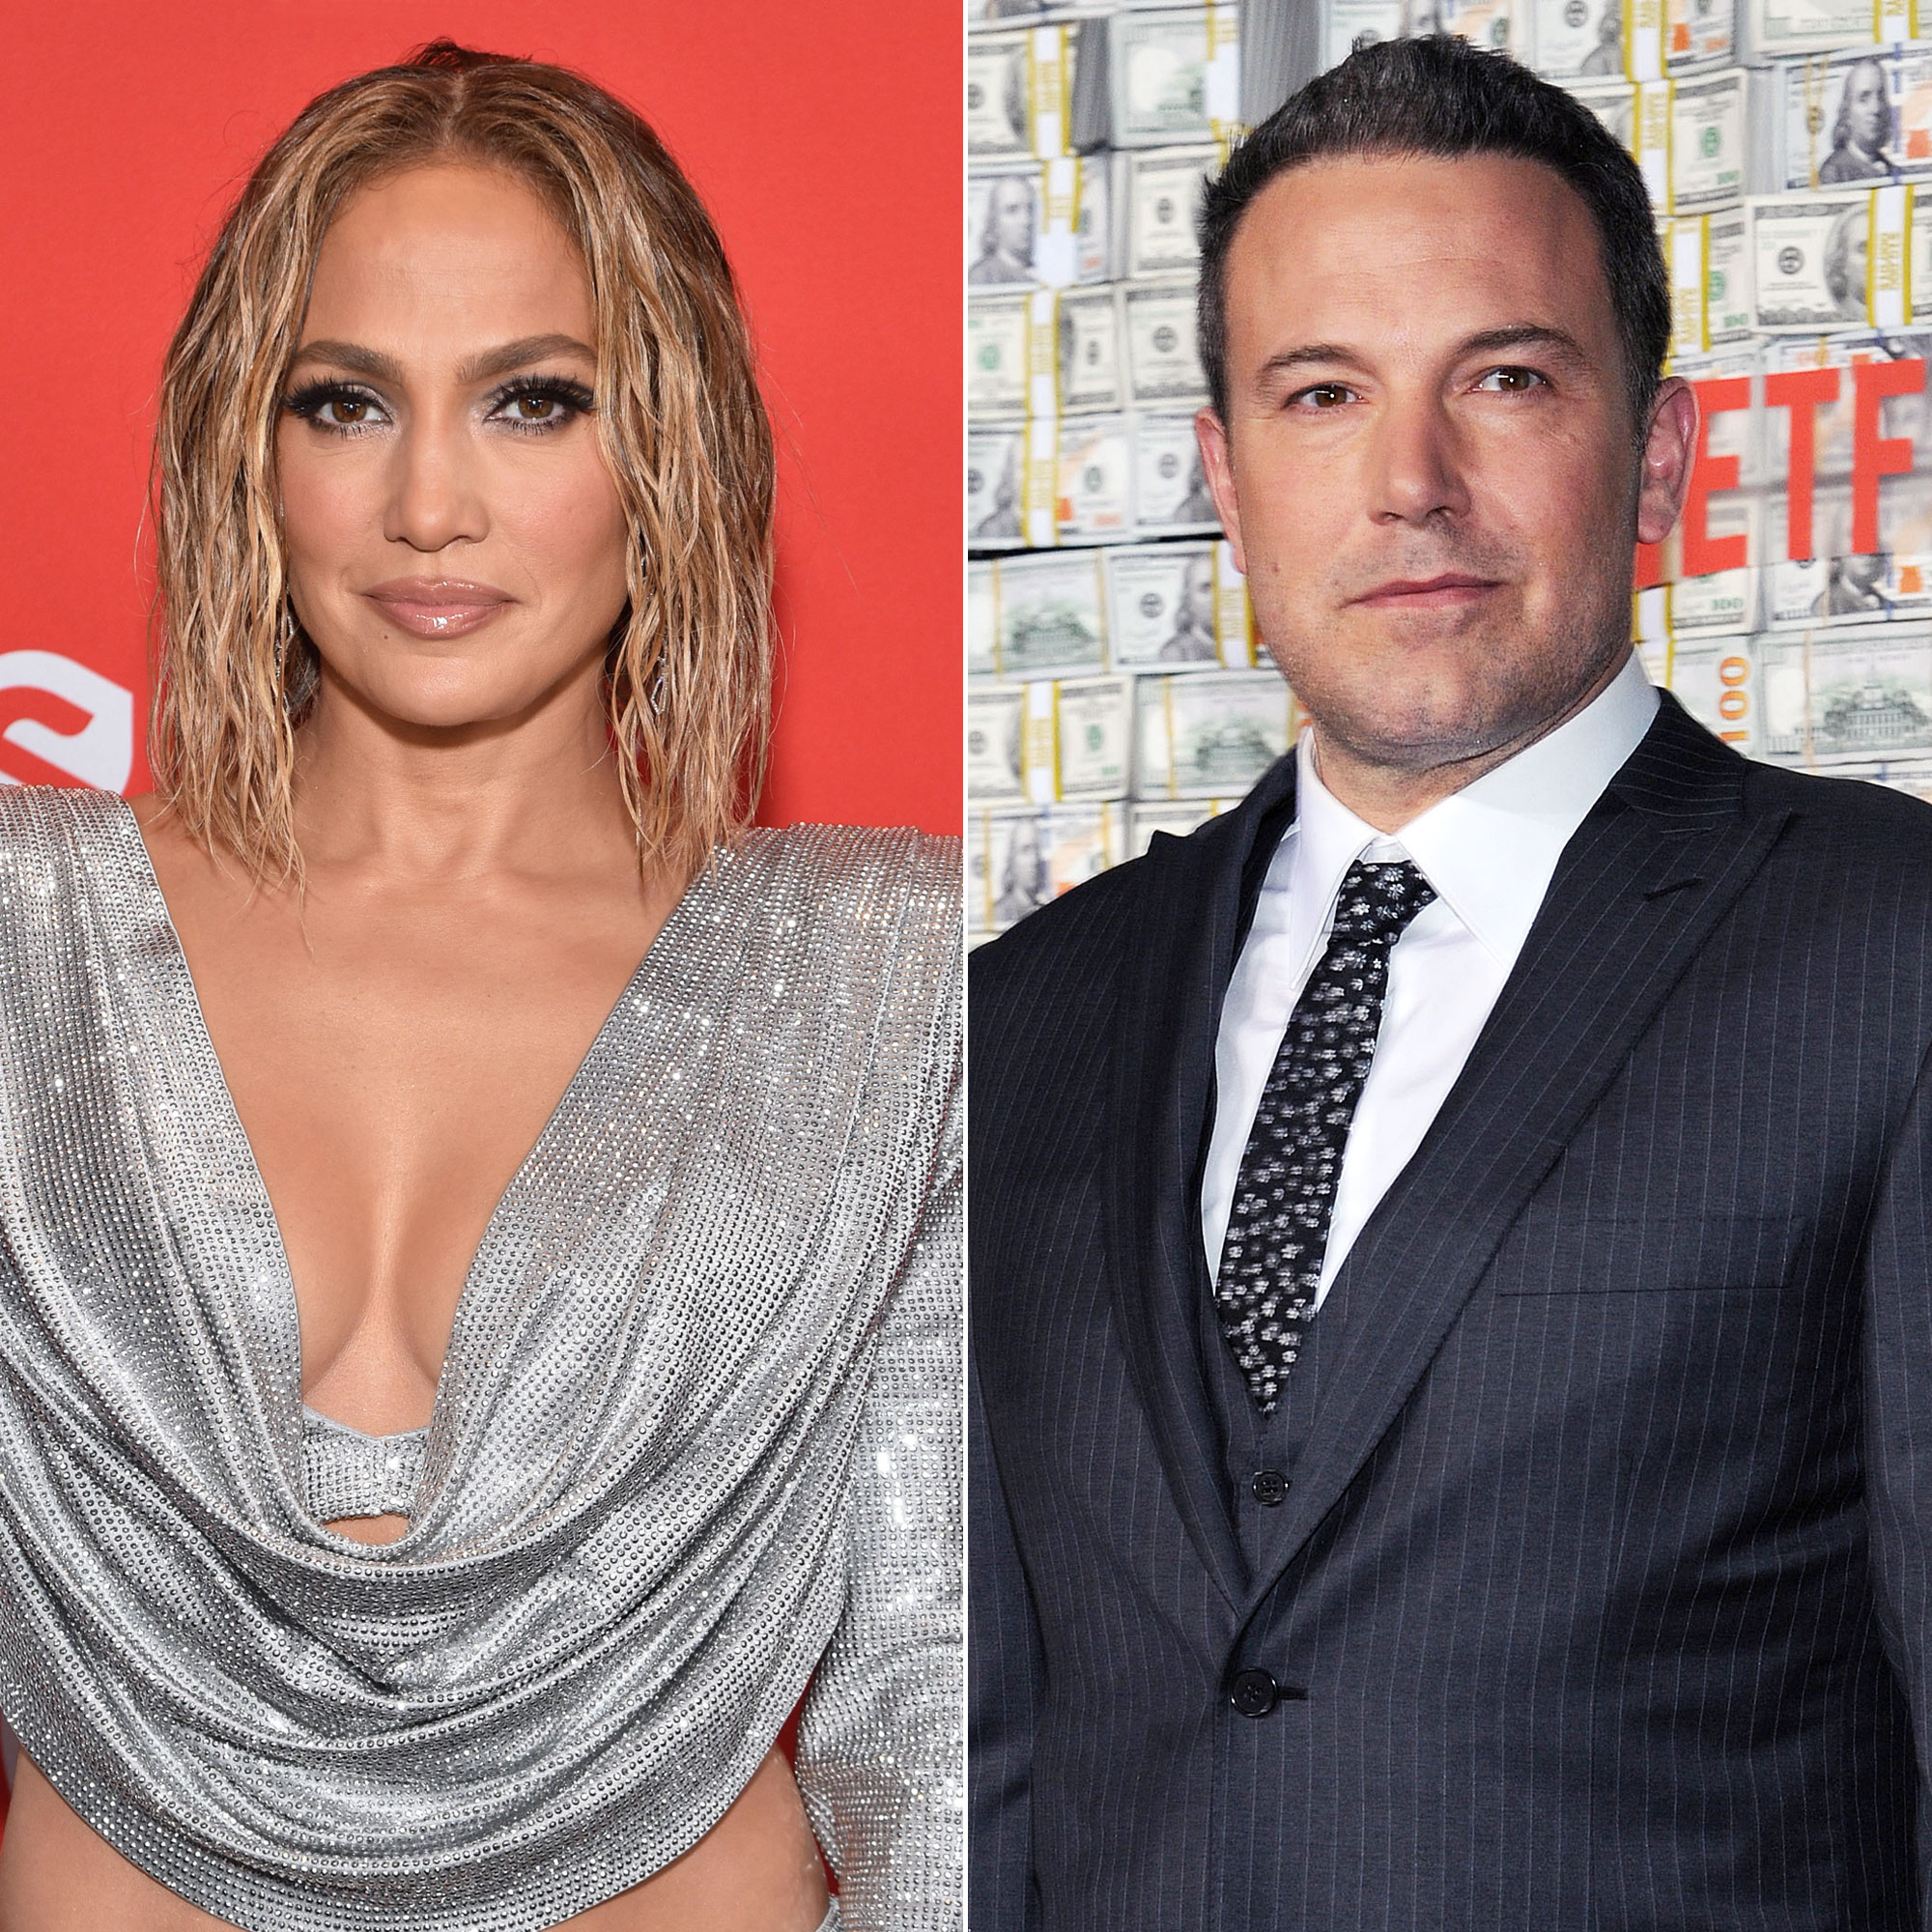 Back at It! J. Lo Reunites With Ben Affleck in L.A. After Montana Trip